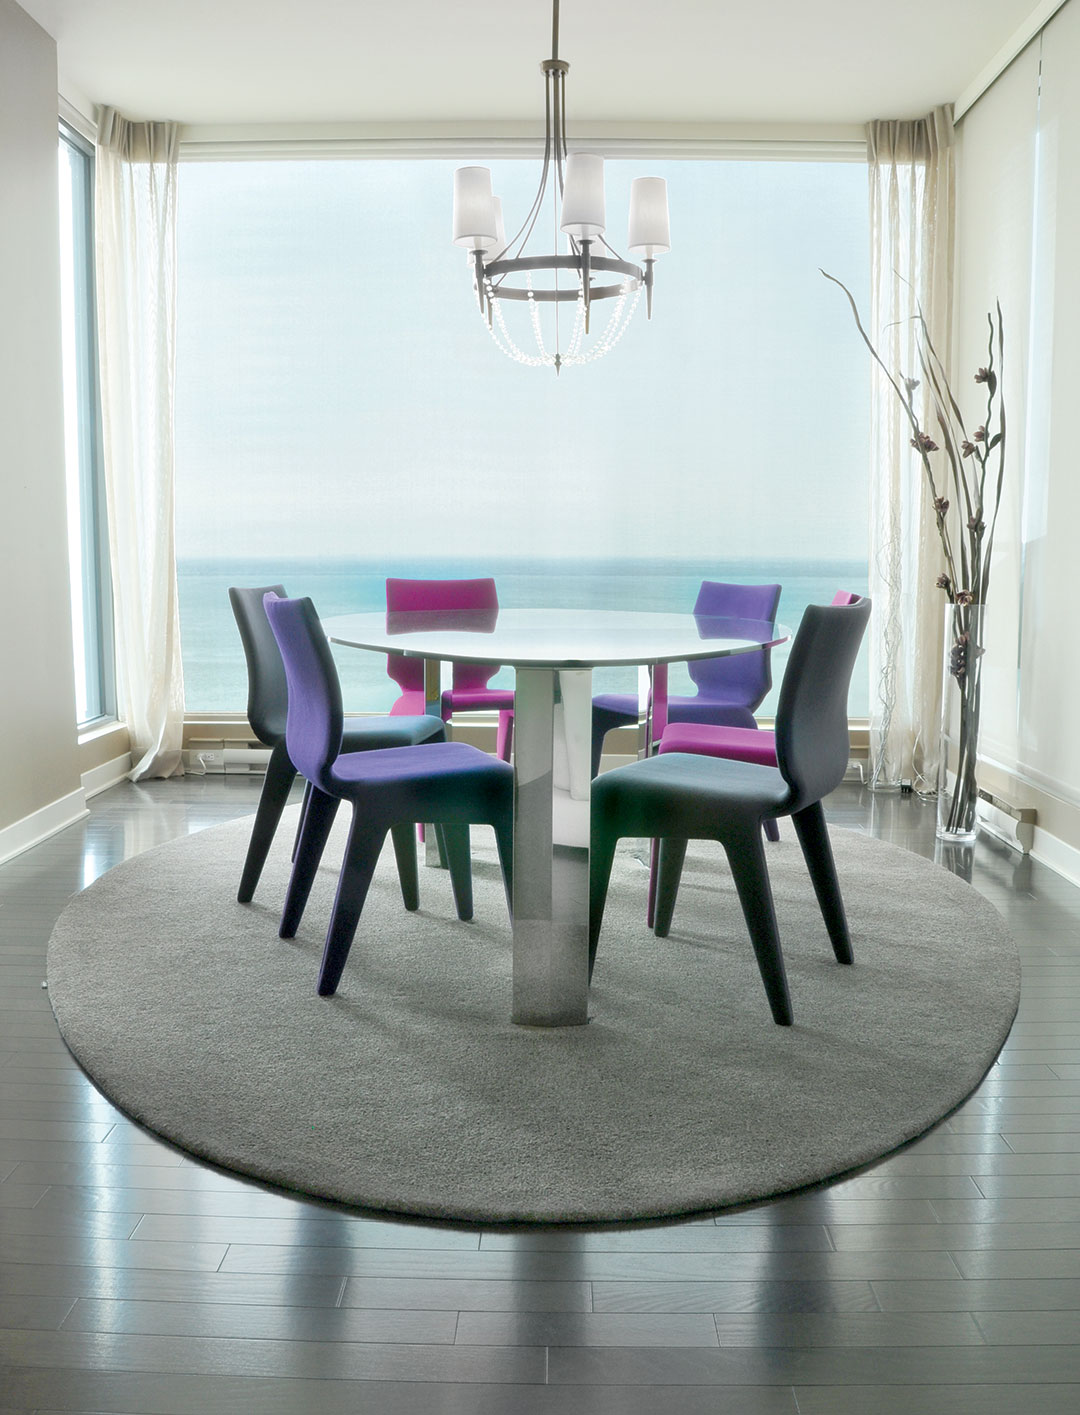 Leaf Shaped Rug in a Modern and Luxury Dinning Room | Custom Rugs | Urba Rugs Canada